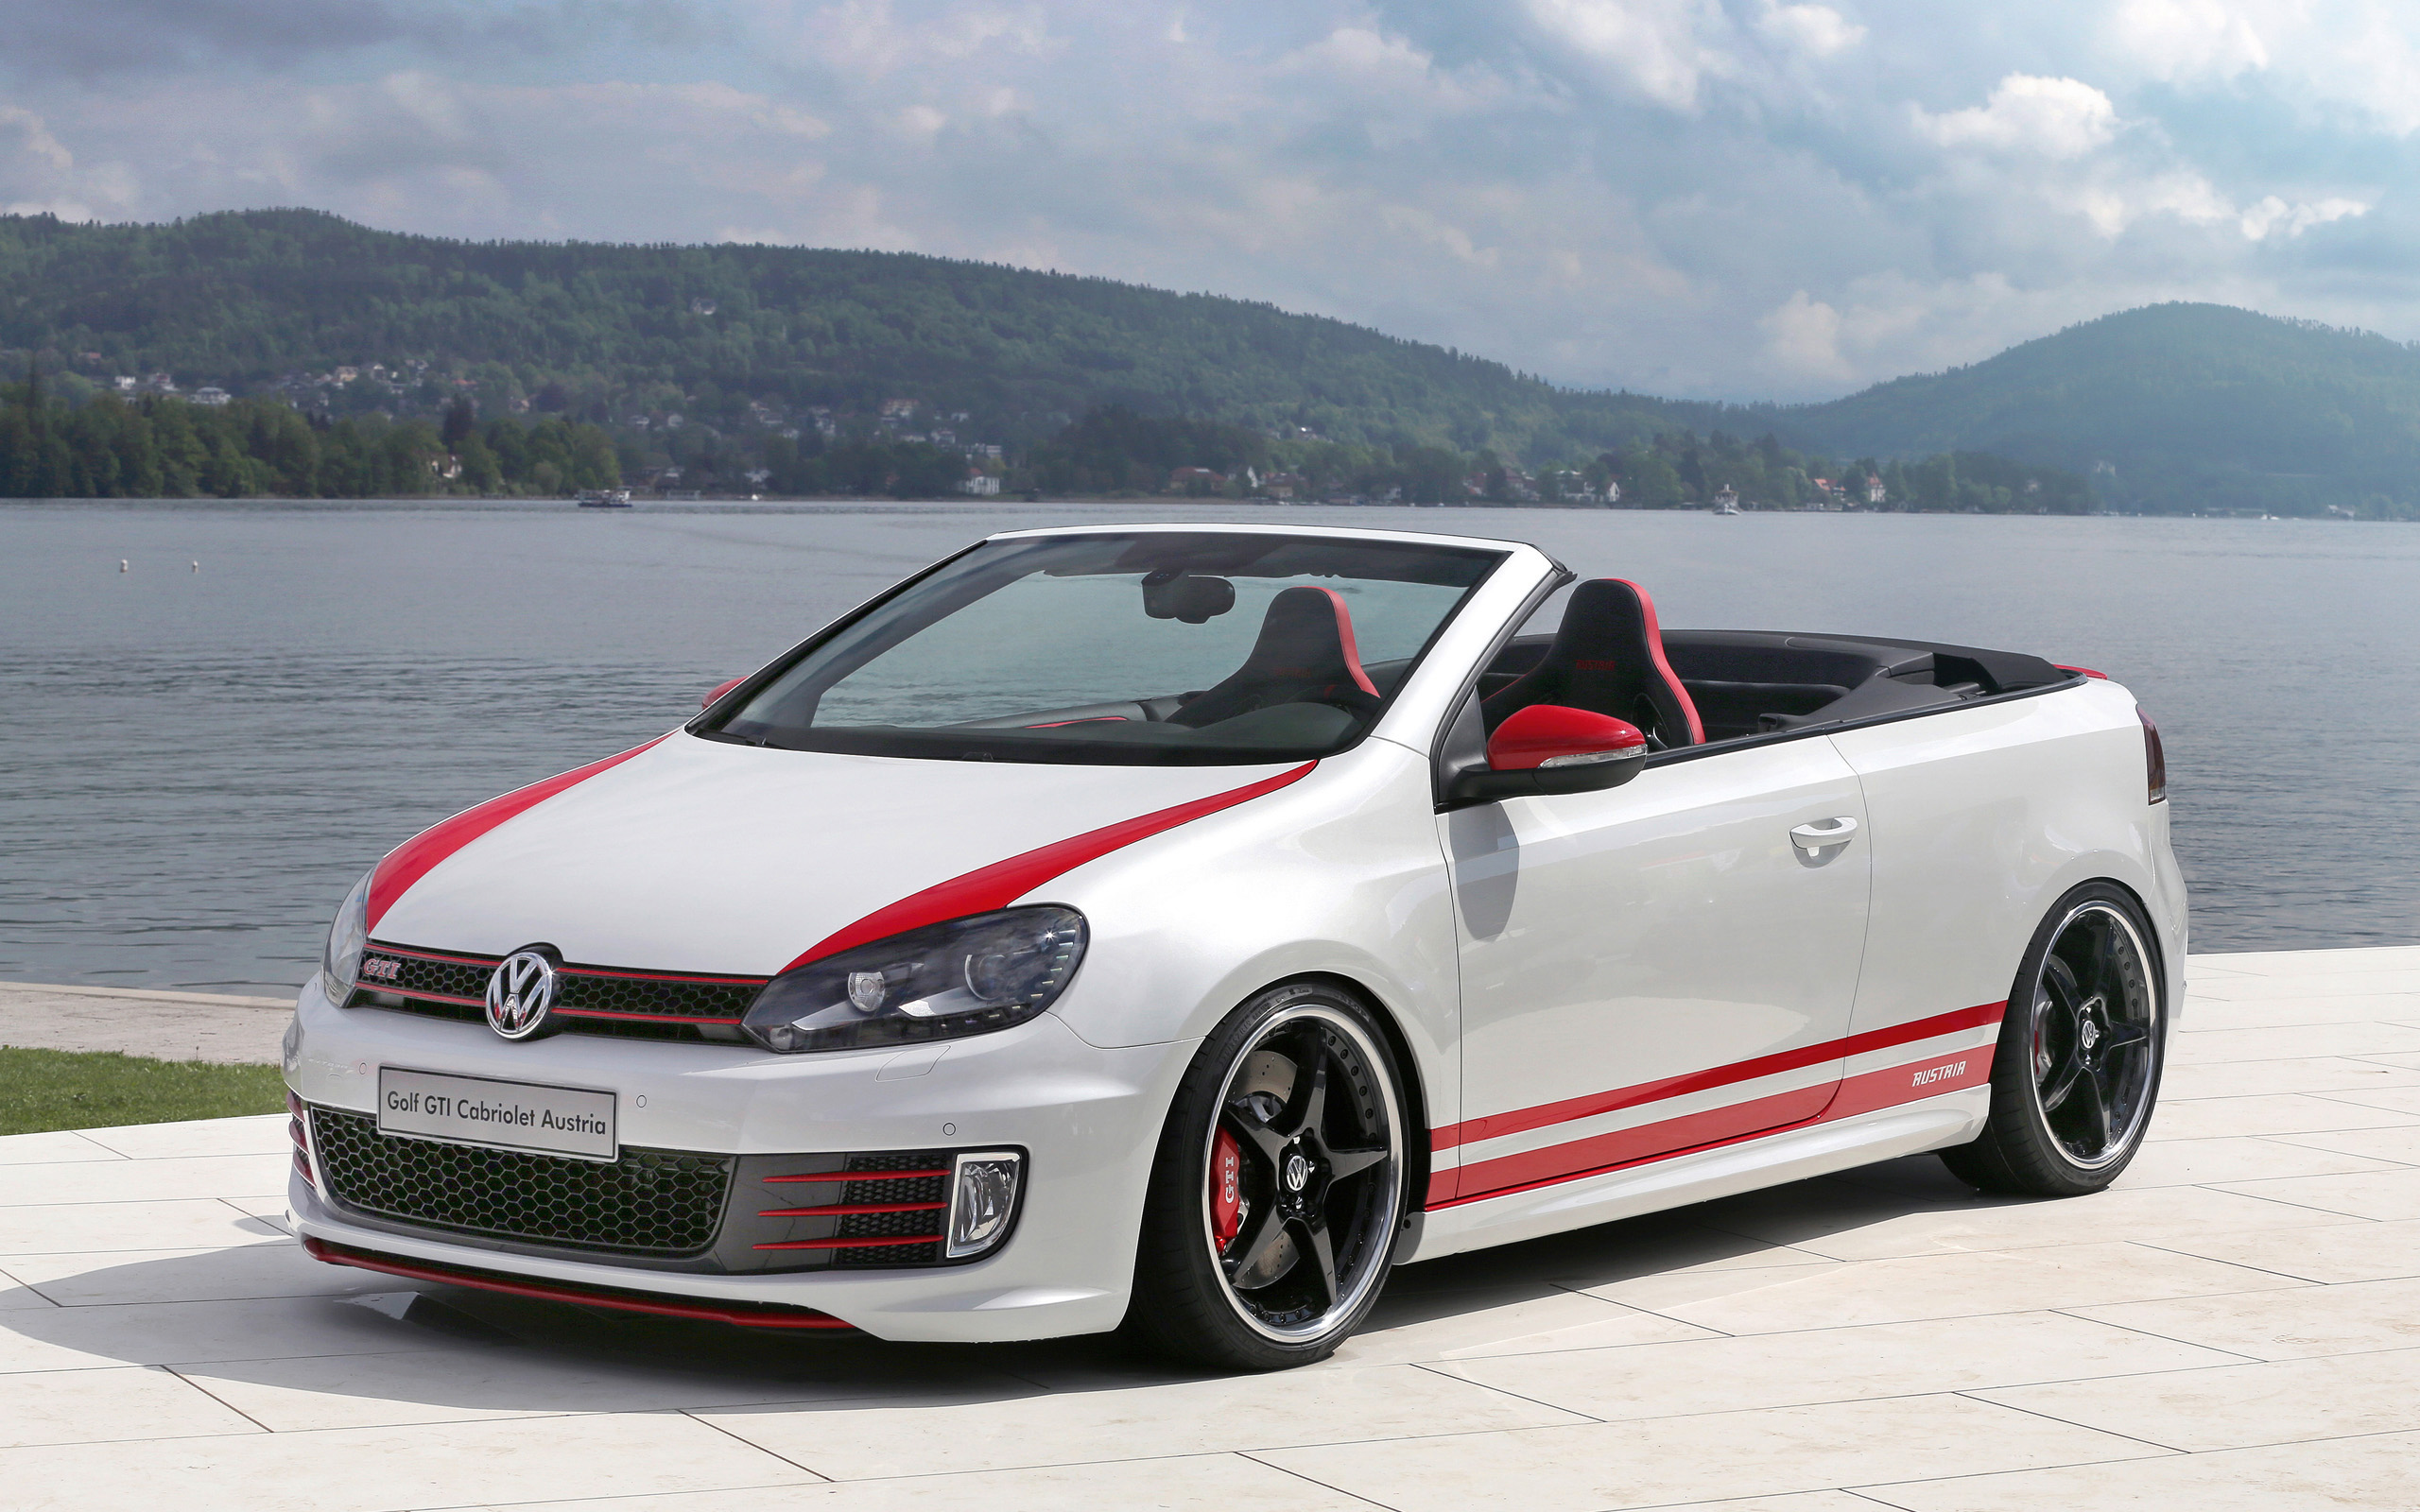 2013 volkswagen golf gti cabrio austria wallpaper hd car wallpapers id 3463. Black Bedroom Furniture Sets. Home Design Ideas